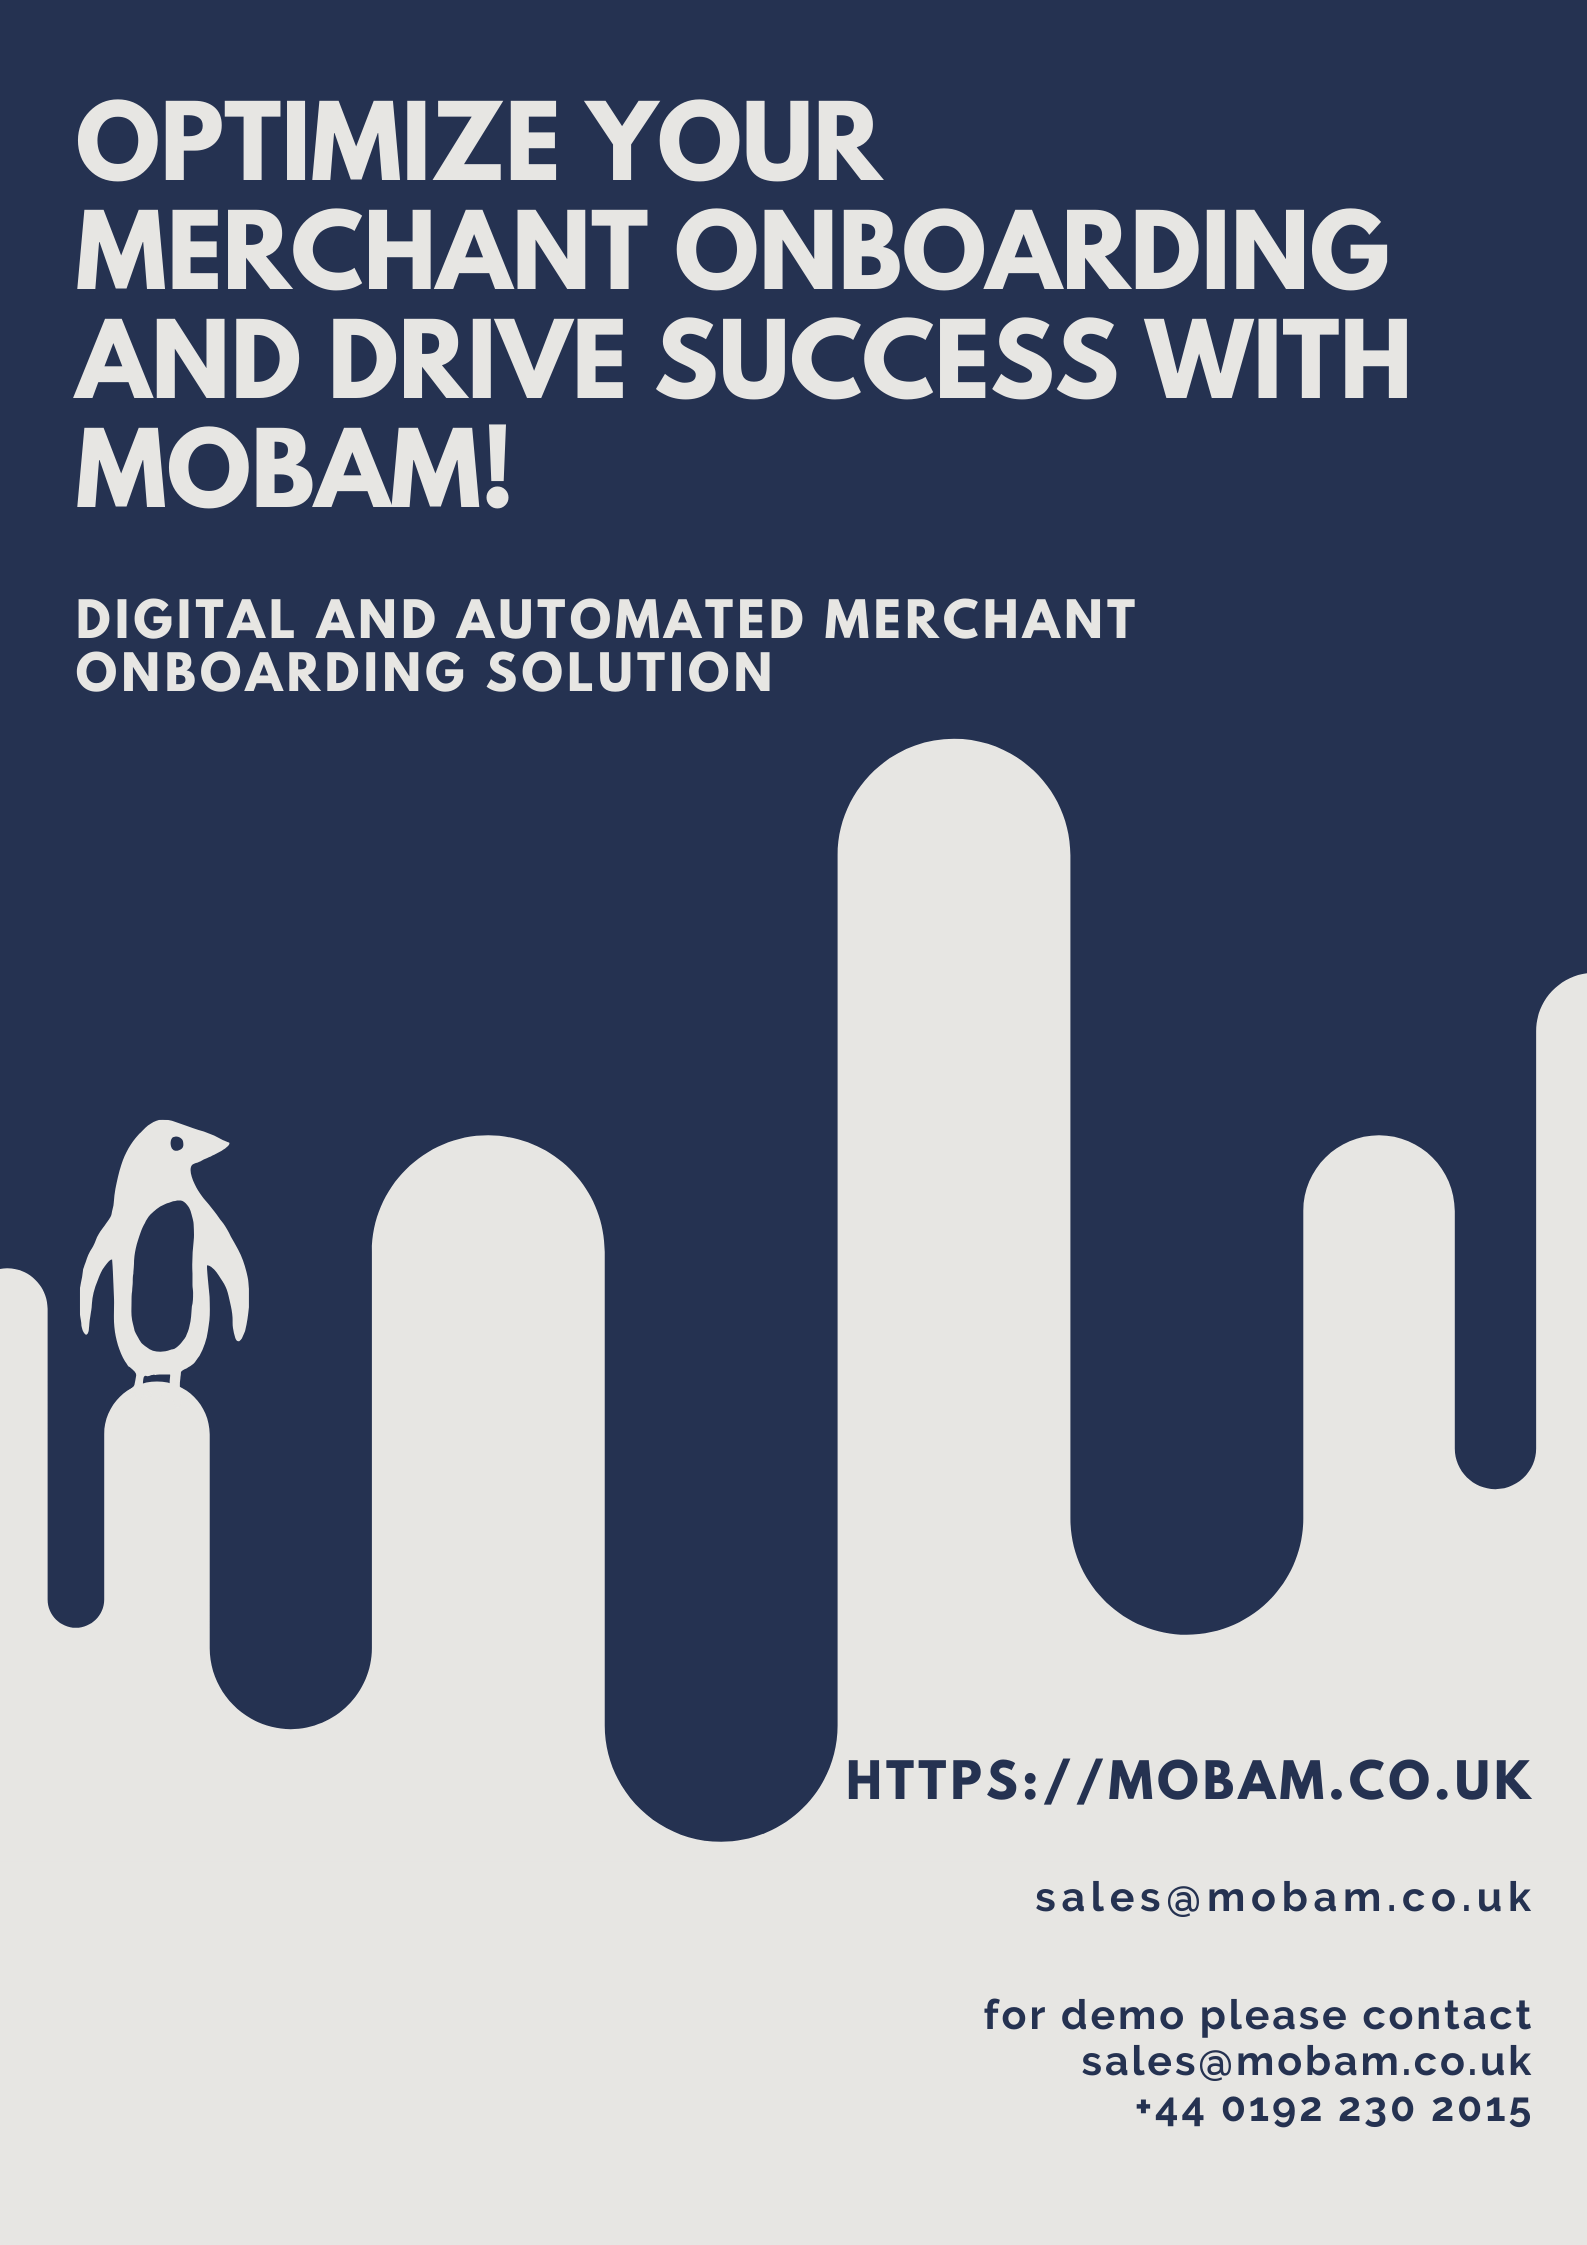 Optimize Your Merchant Onboarding And Drive Success With Mobam Onboarding Optimization Merchants